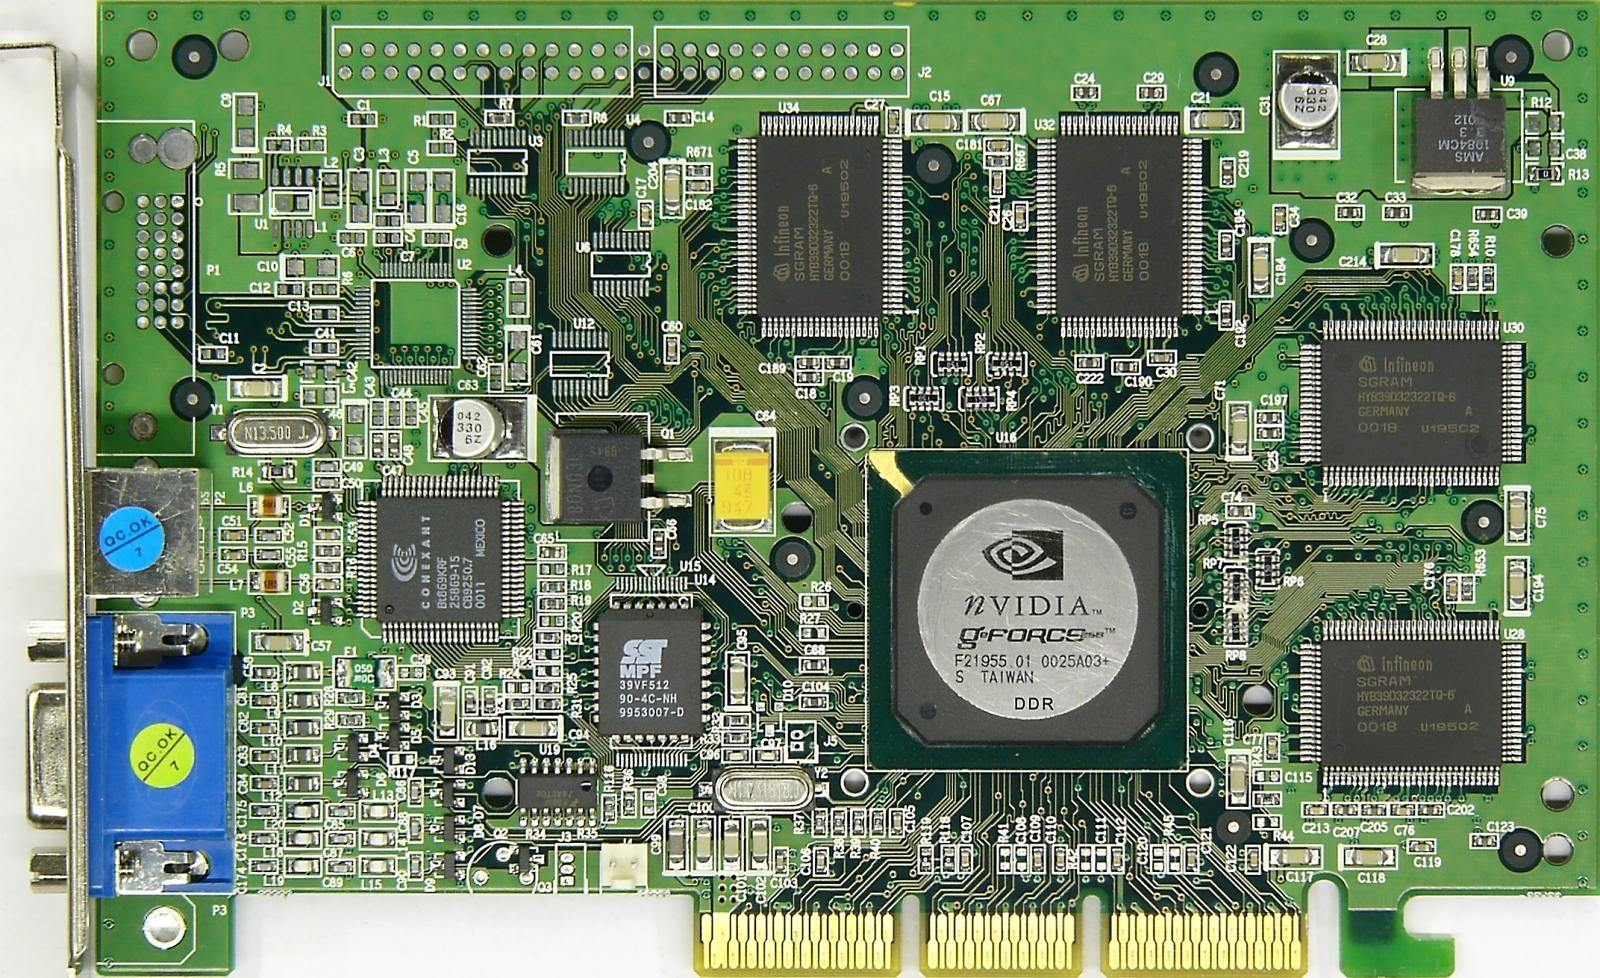 What are Adreno, Mali, Tegra and PowerVR? And which of them